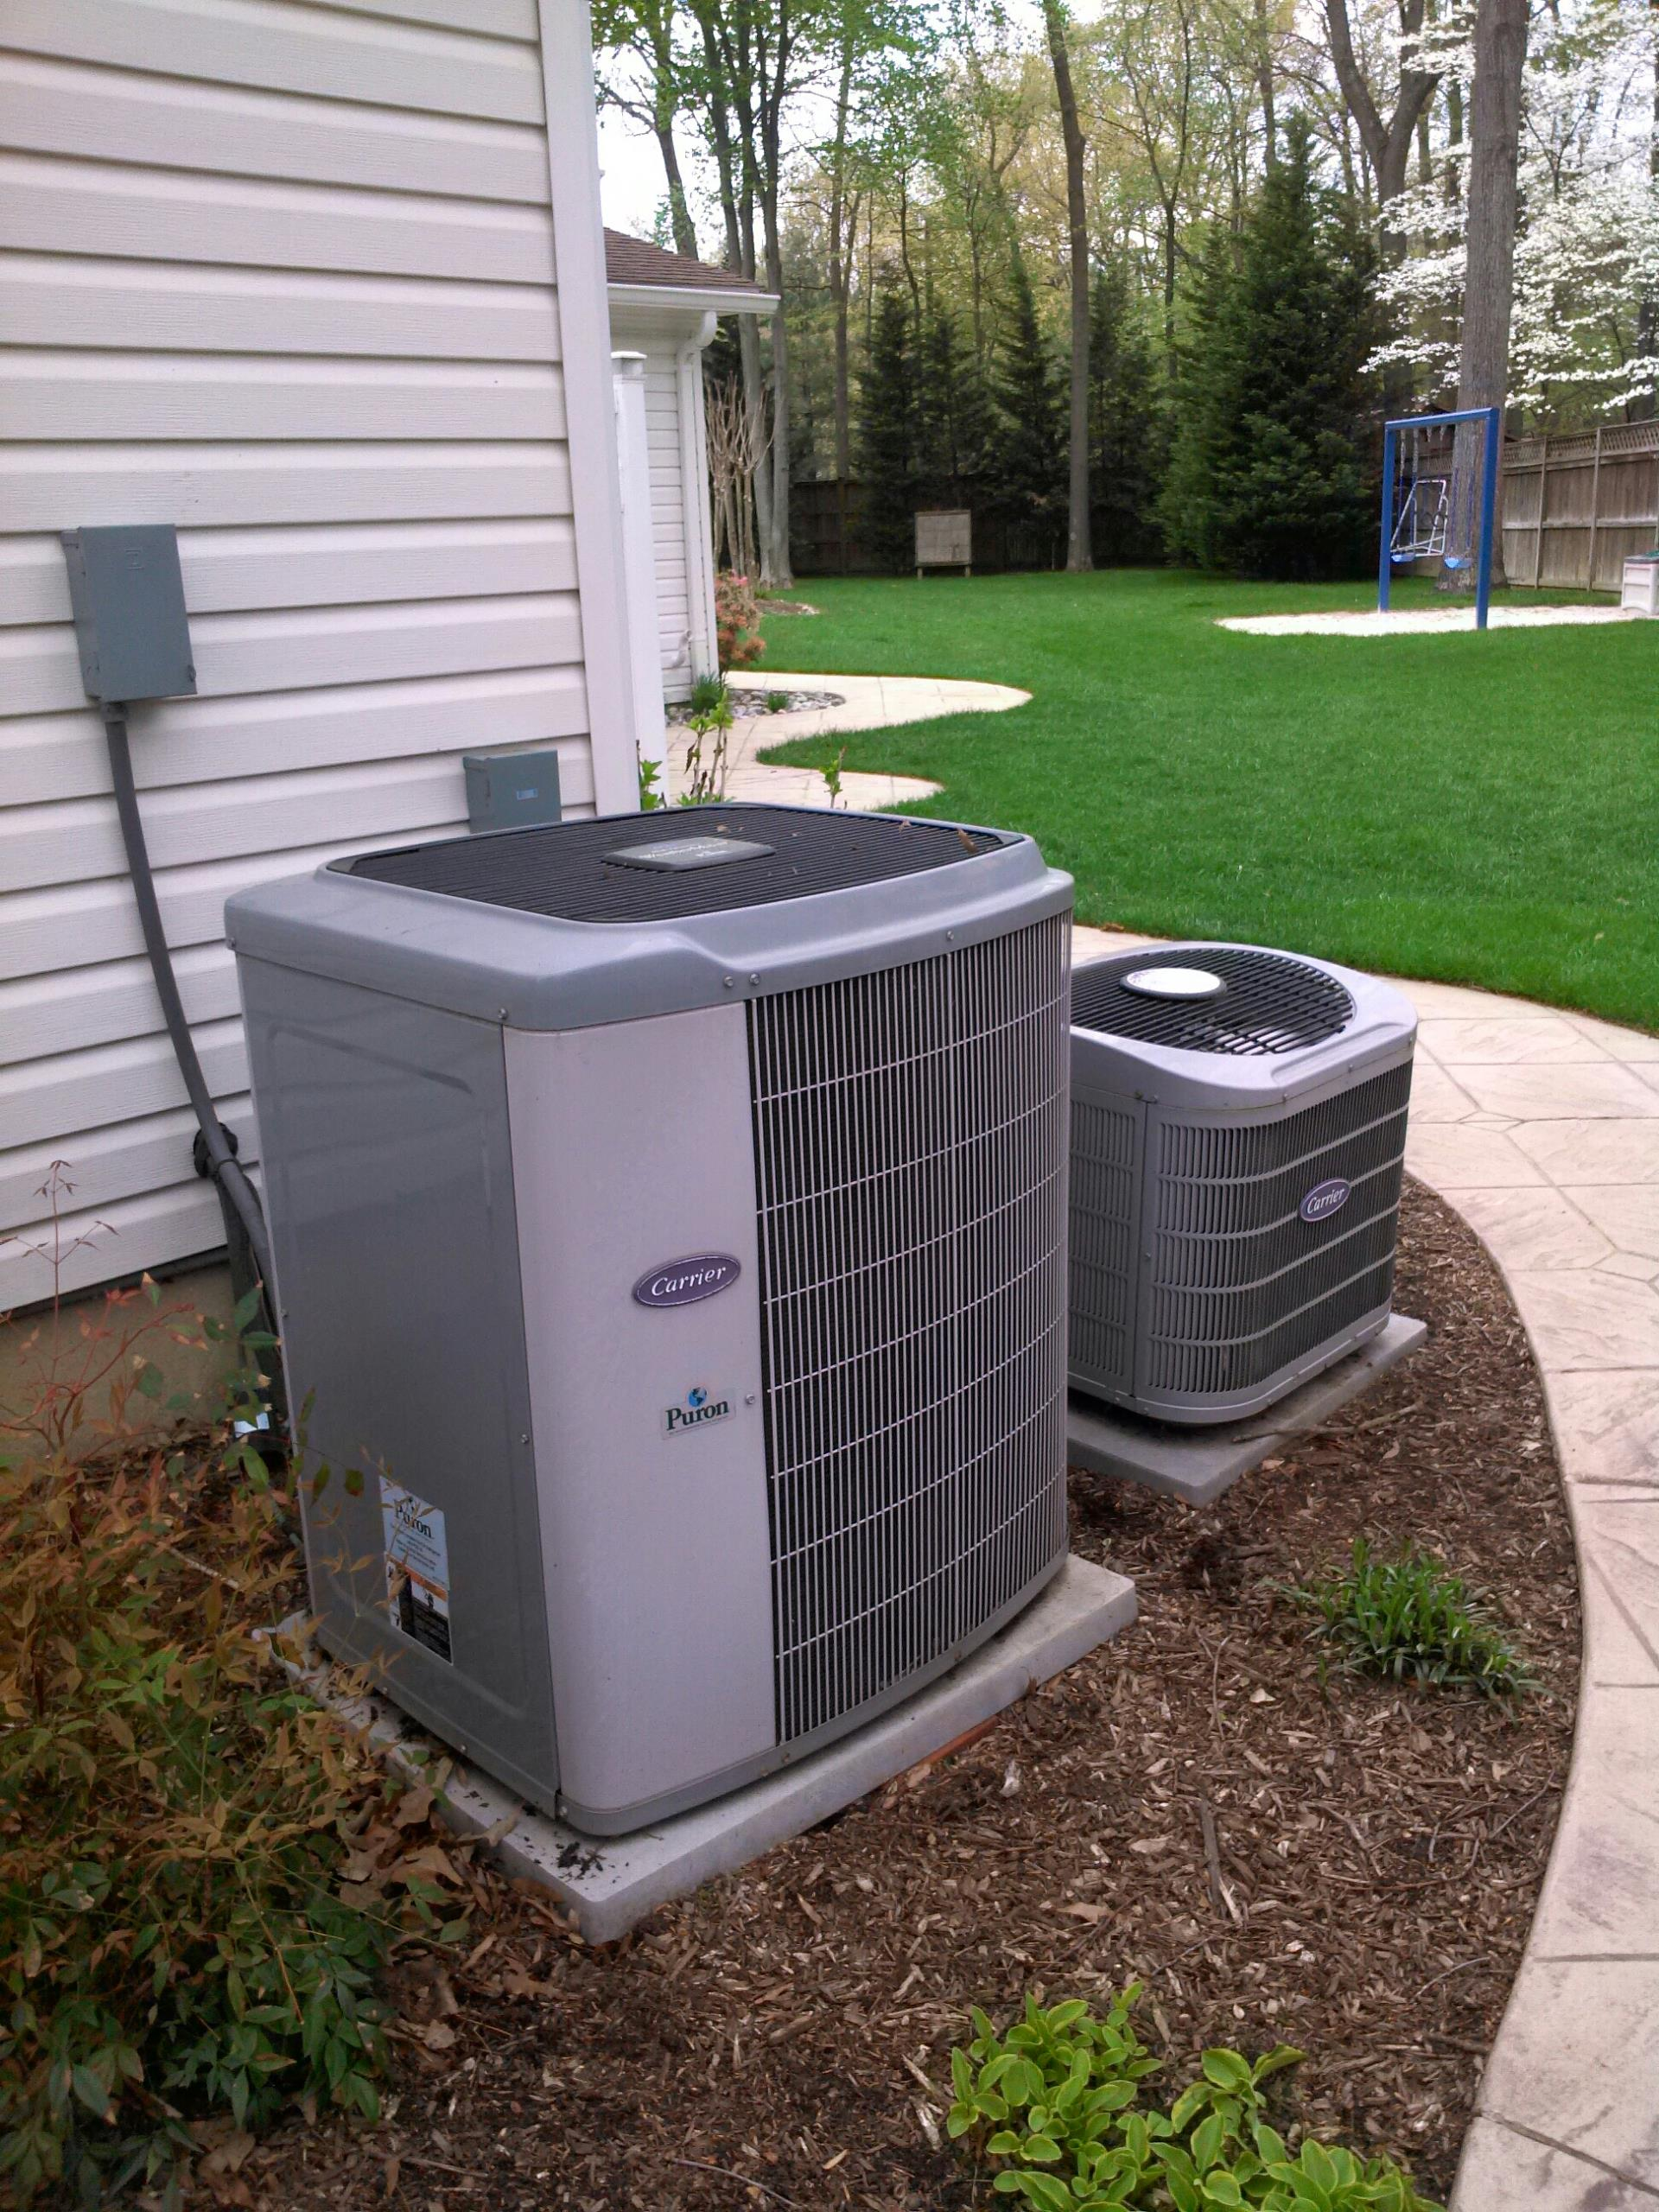 Crofton, MD - Crofton Maryland Carrier AC air conditioning system repair service call